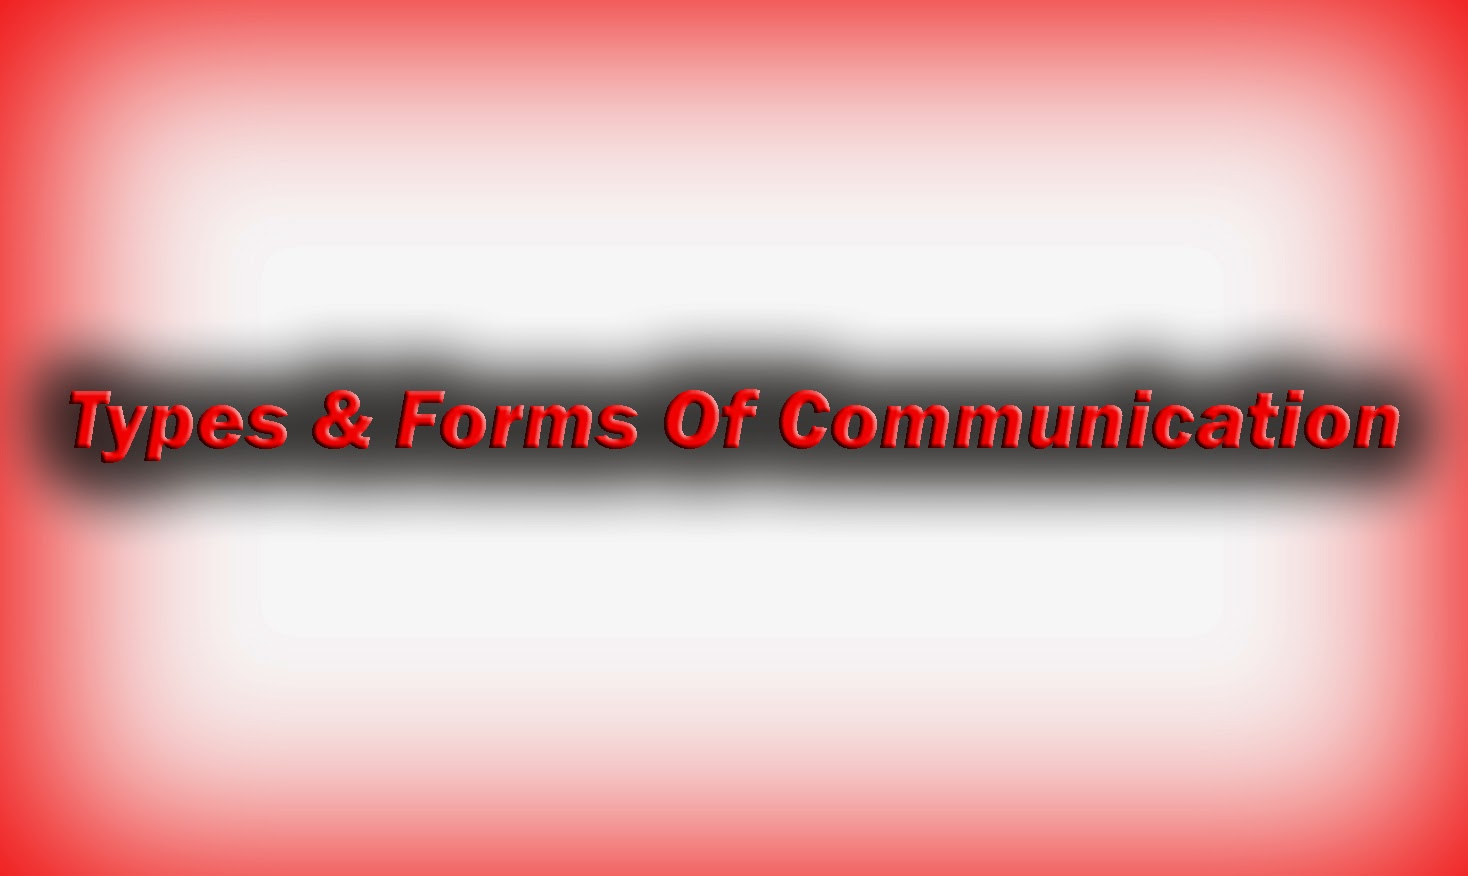 types-and-forms-of-communication